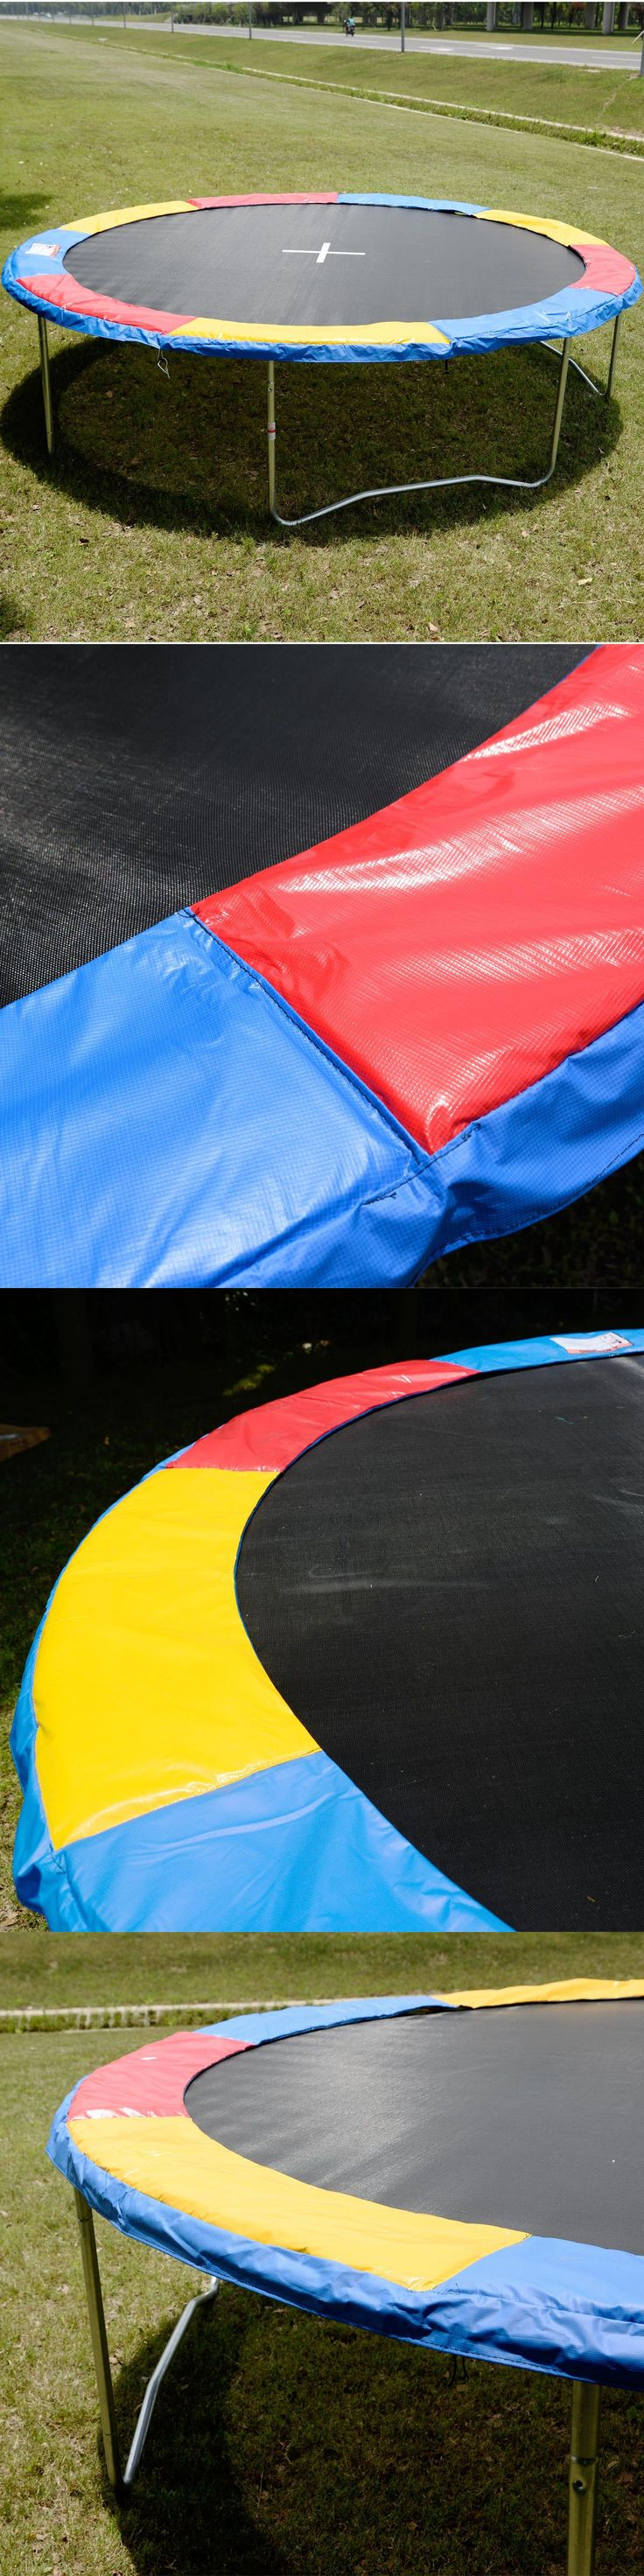 Trampolines 57275: 14 Ft Trampoline Safety Pad Epe Foam Spring Cover Frame Replacement Multi Color BUY IT NOW ONLY: $35.88